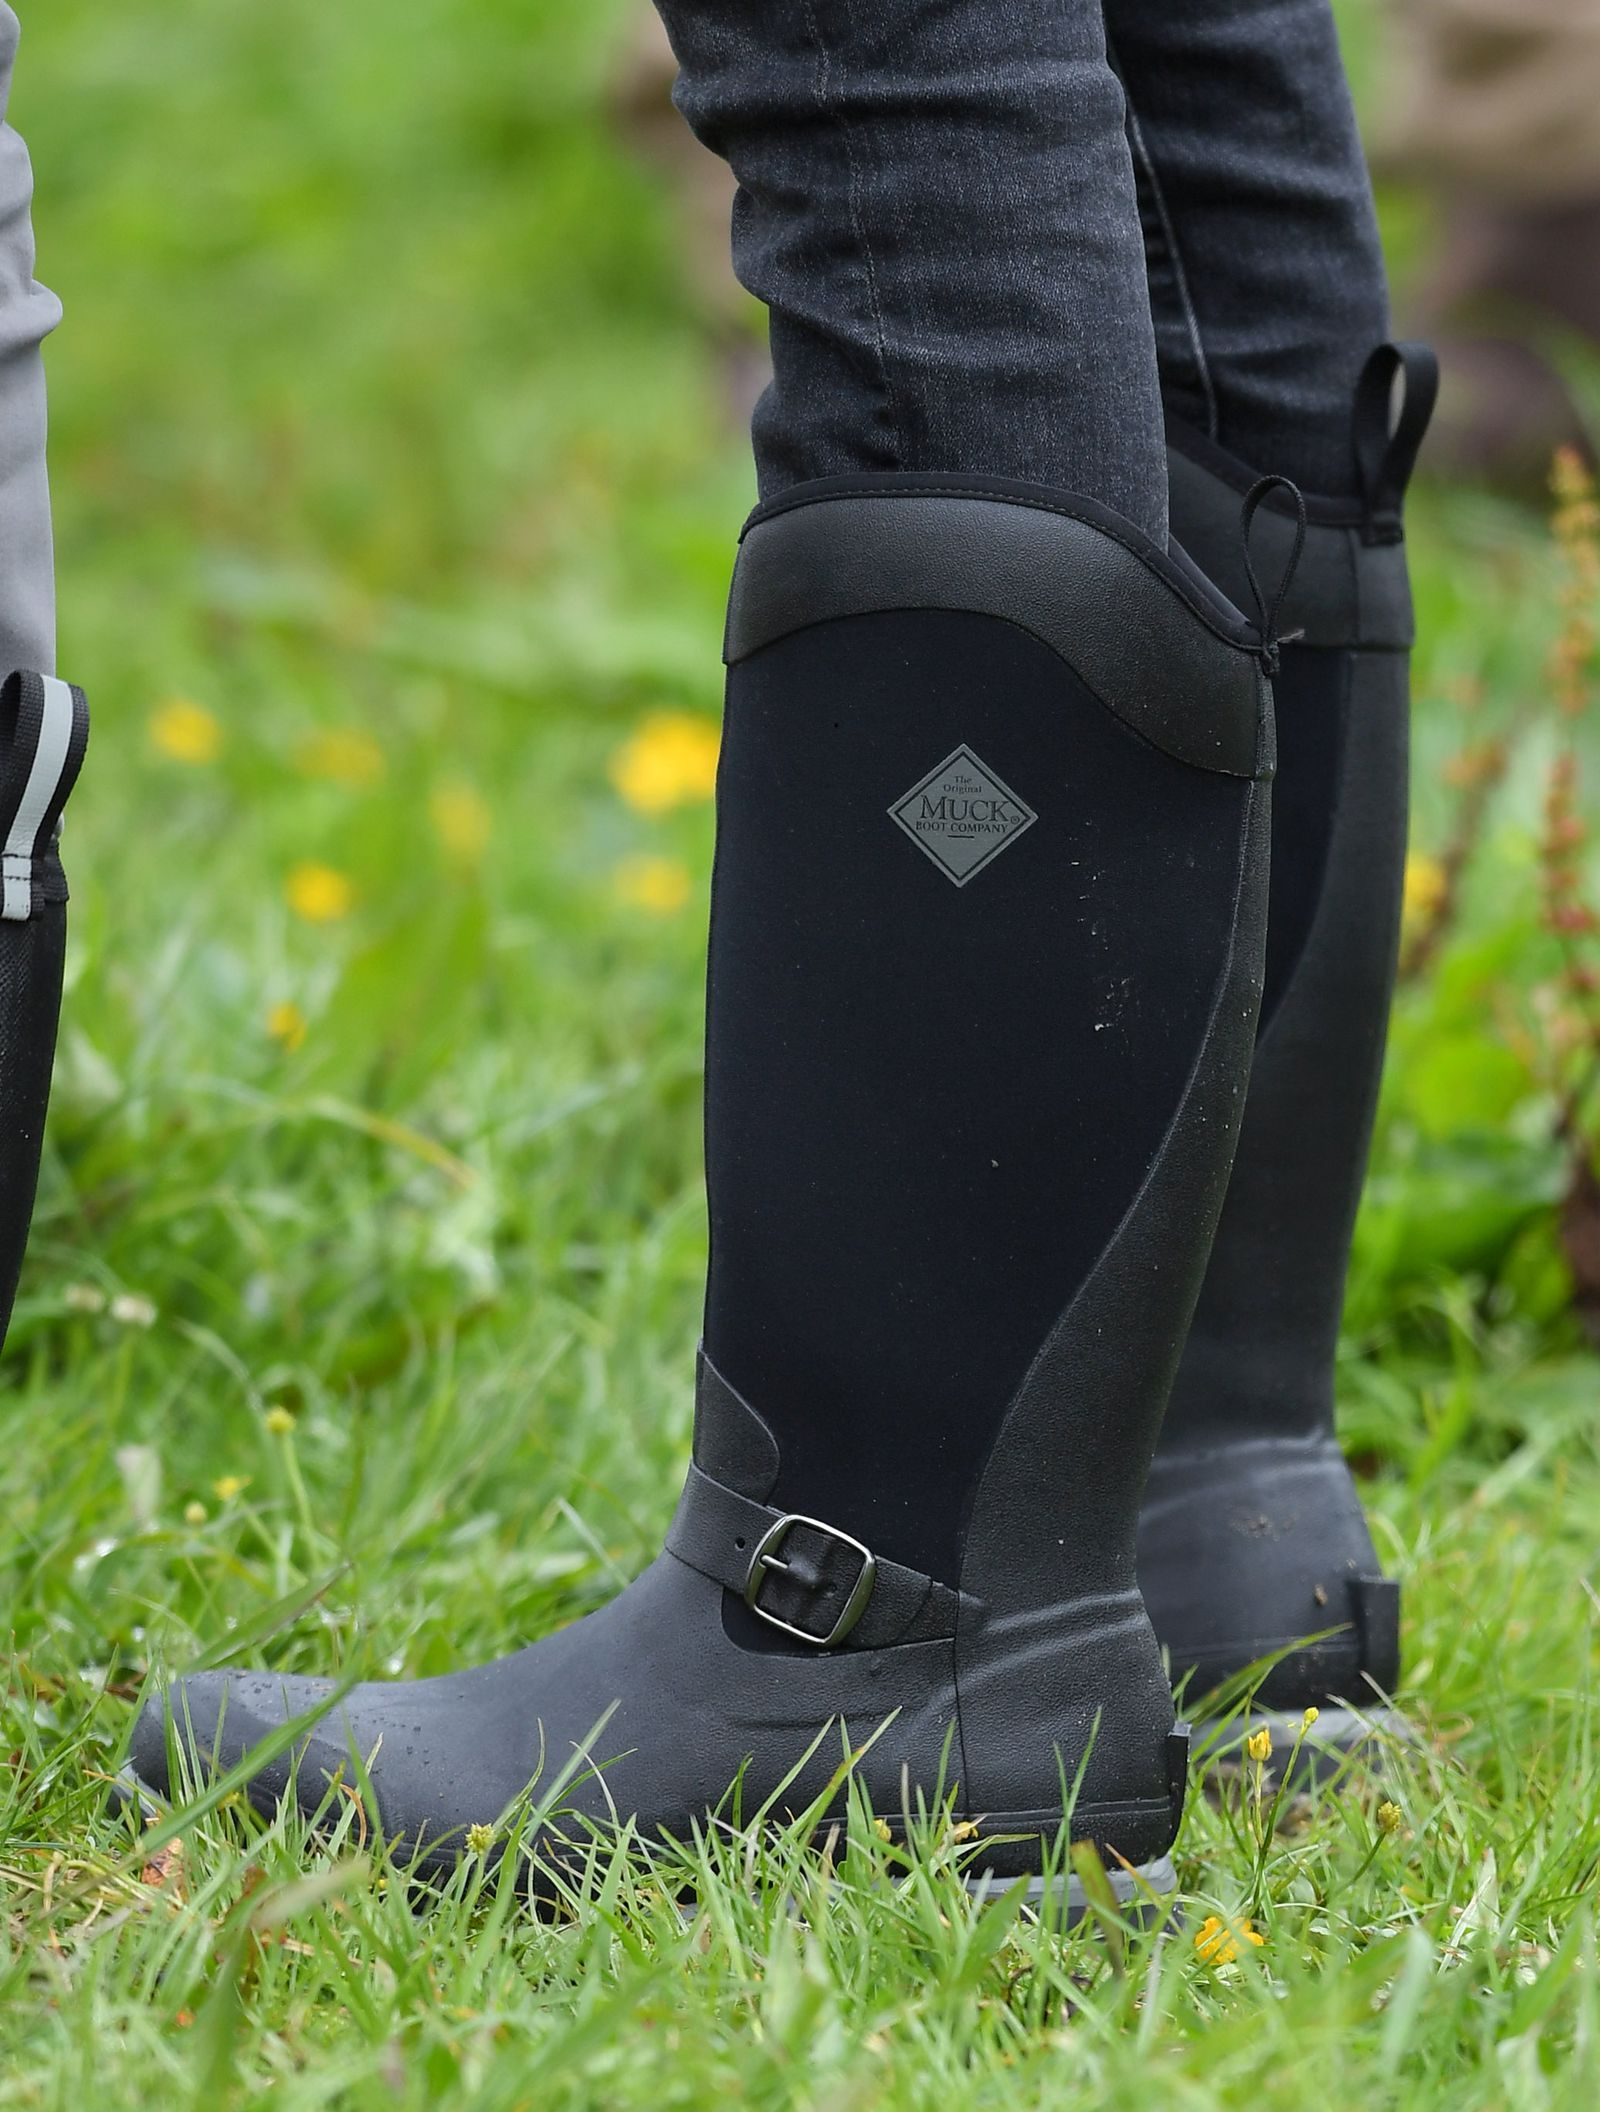 Meghan Markle S Muck Boots Will Make You Look Chic Trudging